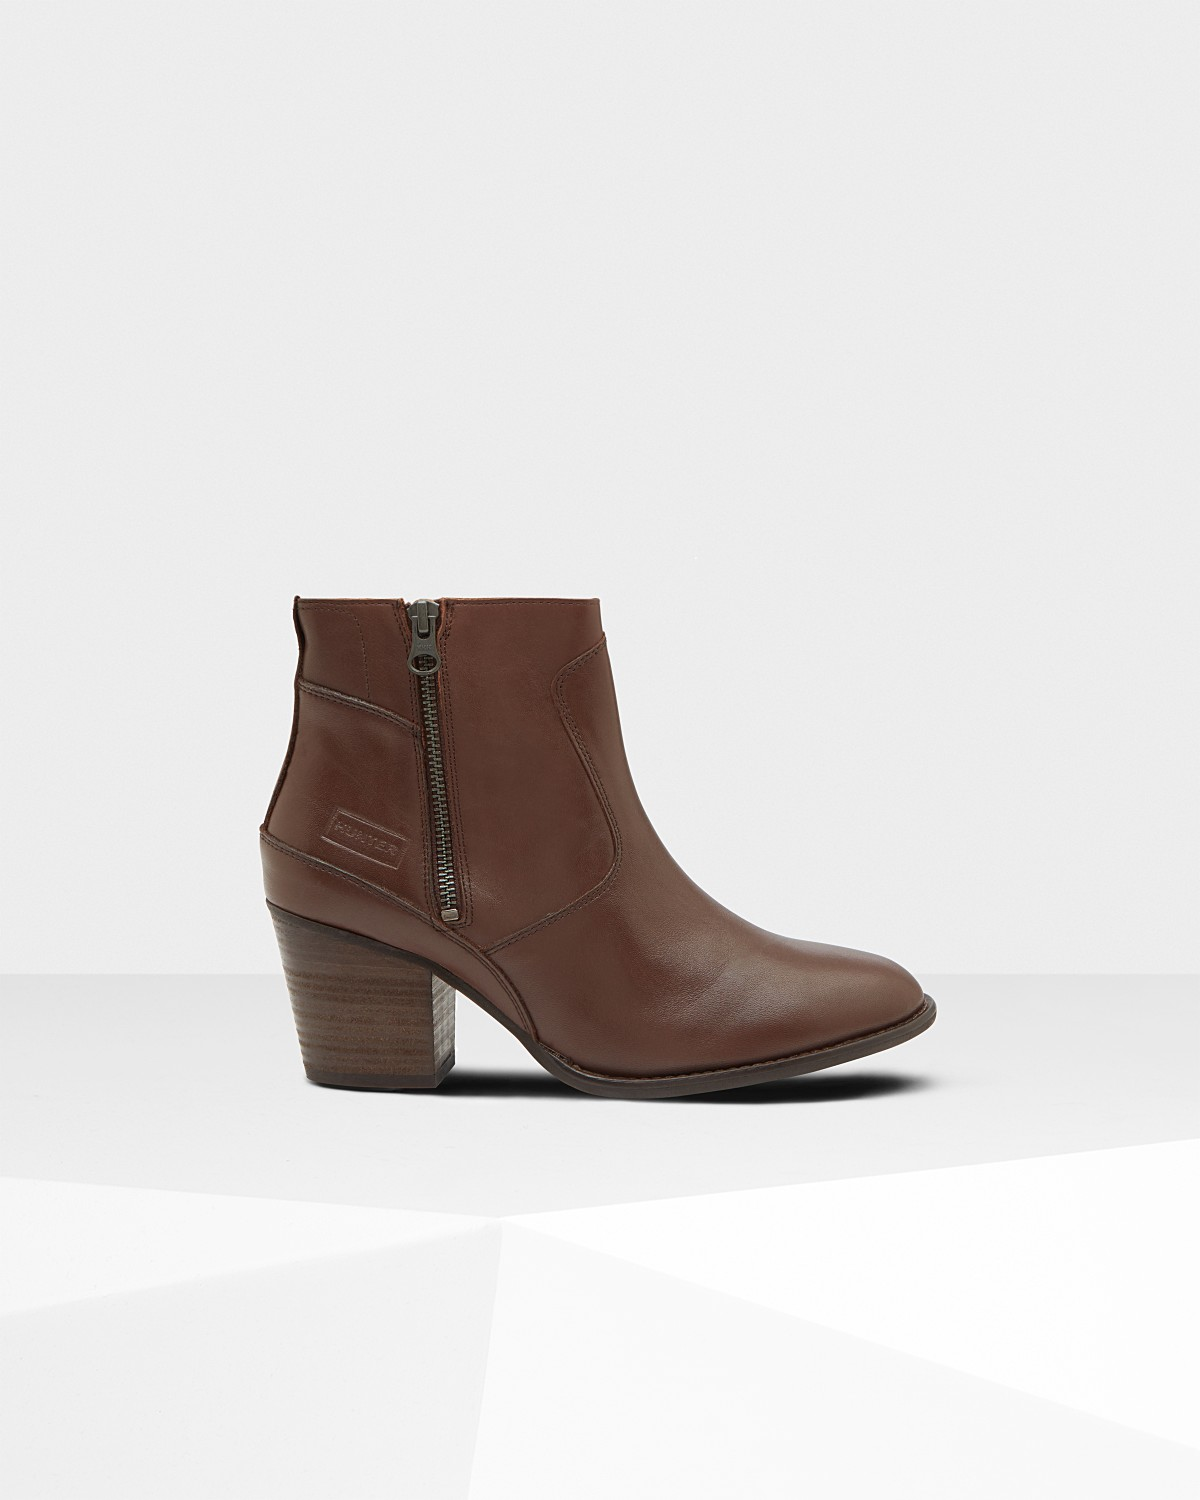 27b552b7fc0c7 women s refined leather ankle boots  bitter choc